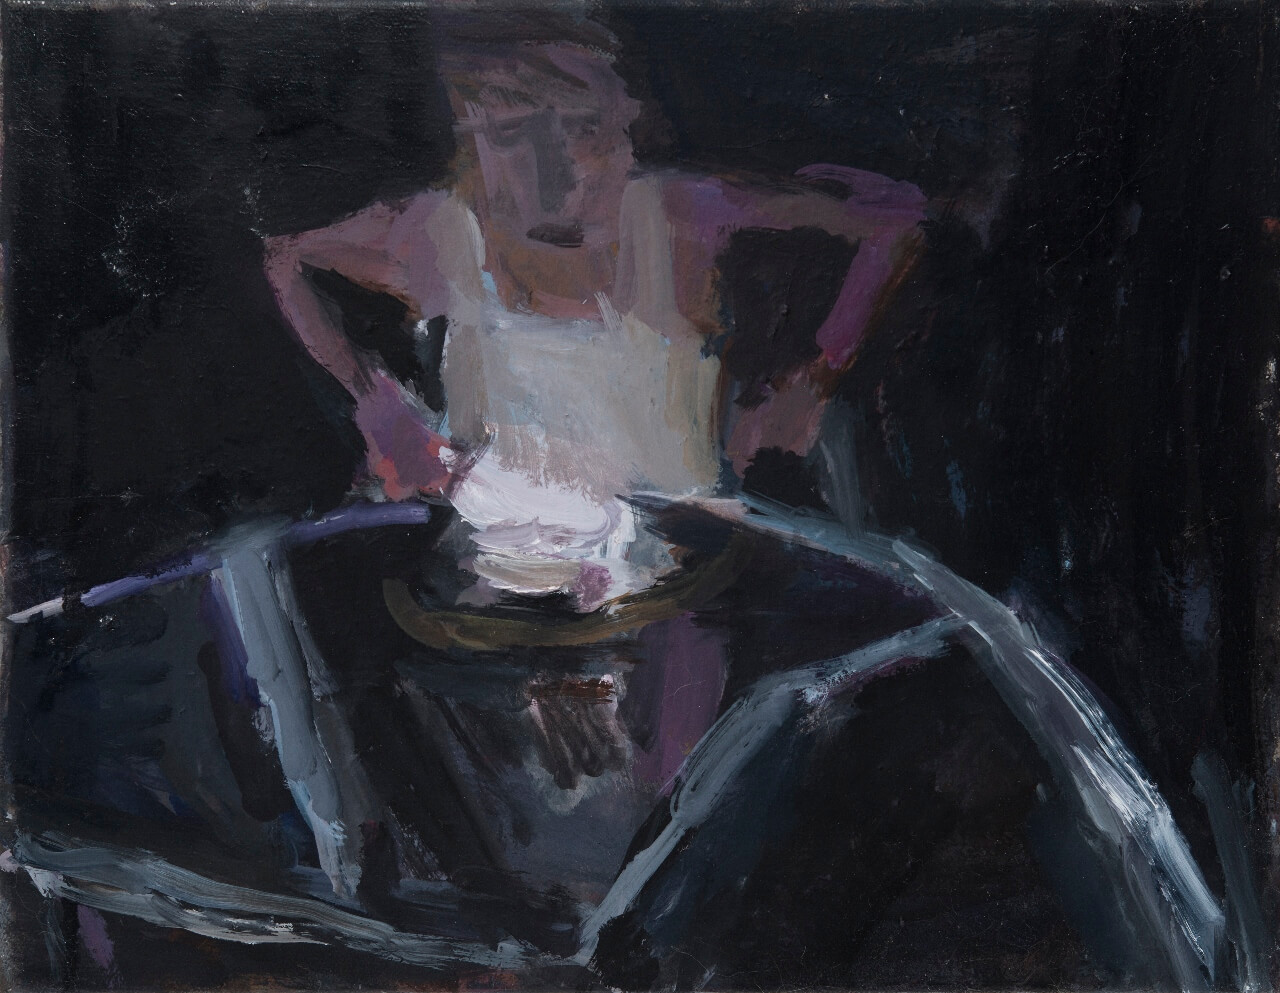 Janice Nowinski, Man at a Table, 2016, oil on canvas, 11 x 14 inches